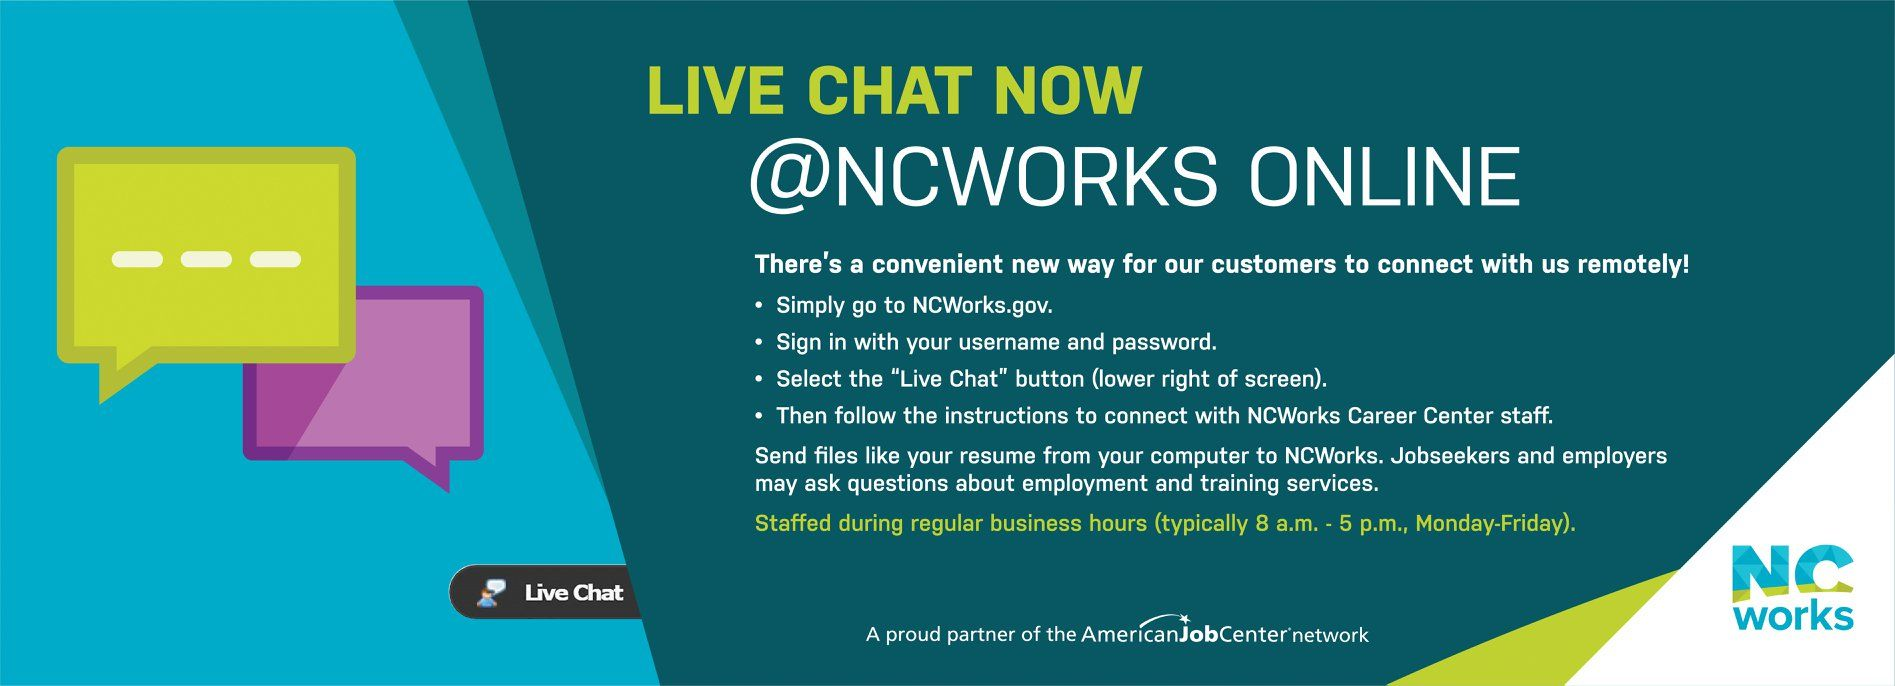 NEW! Chat with NCWorks Career Center staff on www.NCWorks